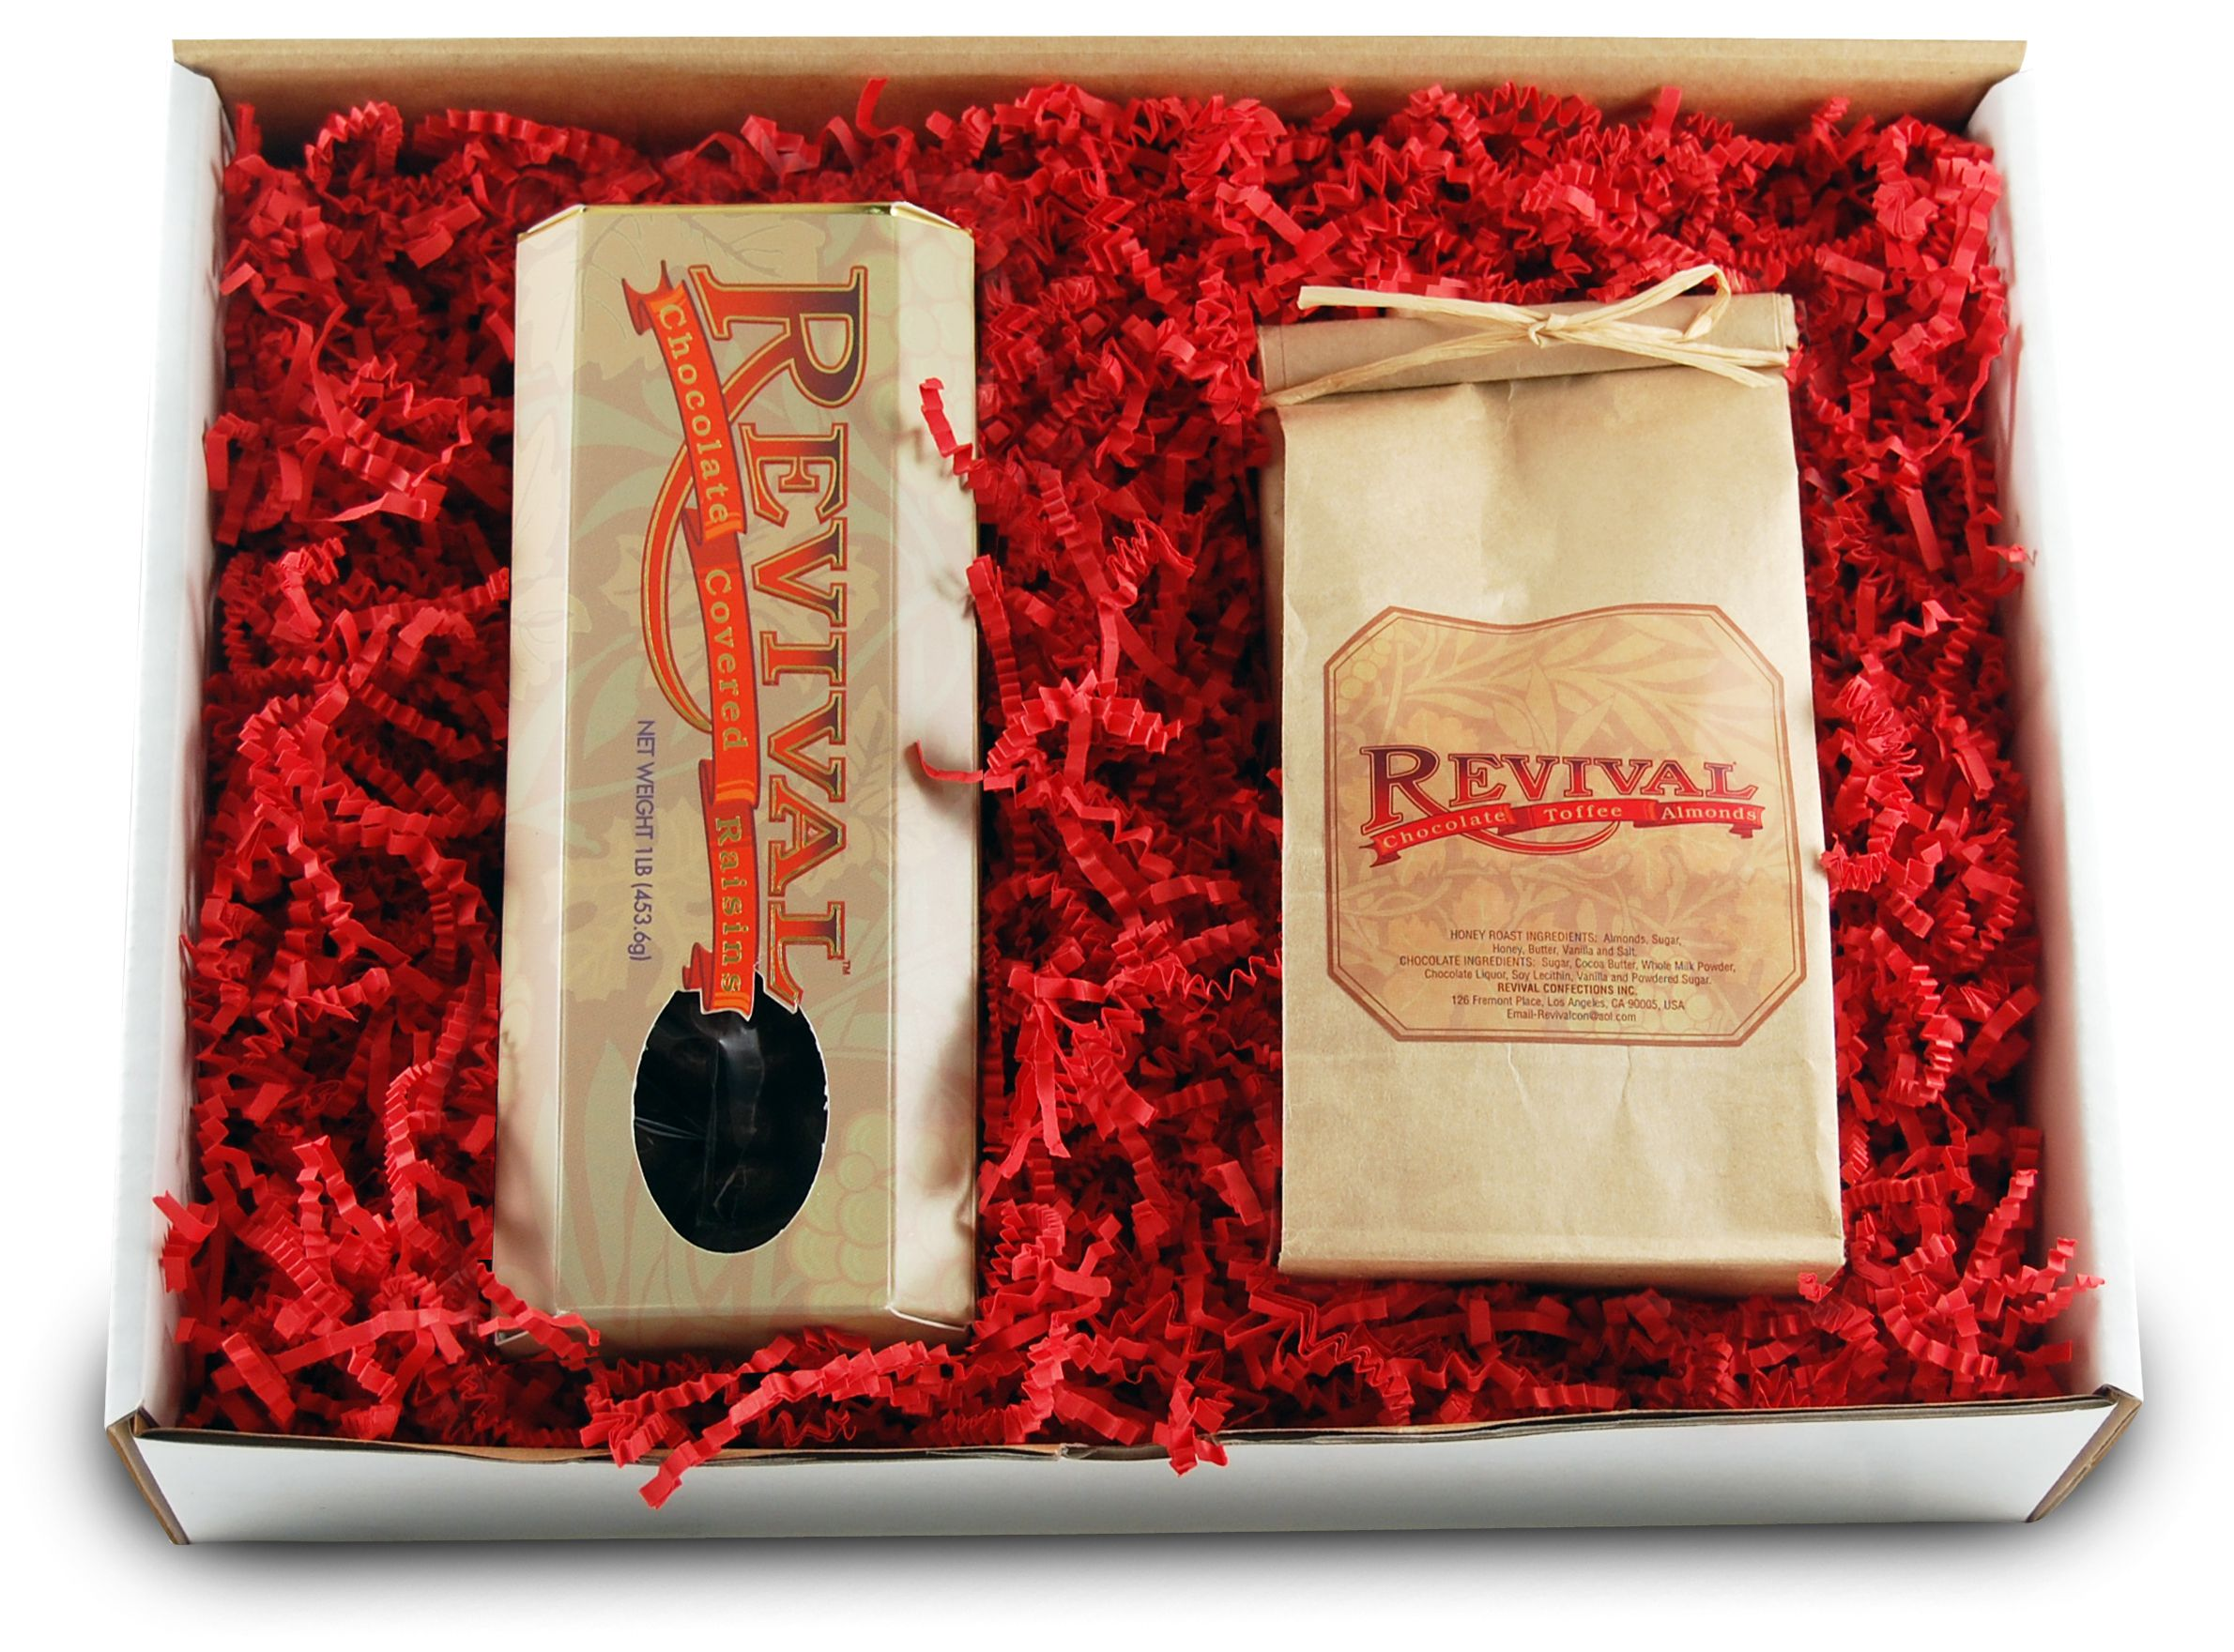 Revival Confections Original Gift Box 1 Pound Each Of Our Chocolate Covered Raisins And Chocolate To Chocolate Covered Raisins Chocolate Toffee Original Gift